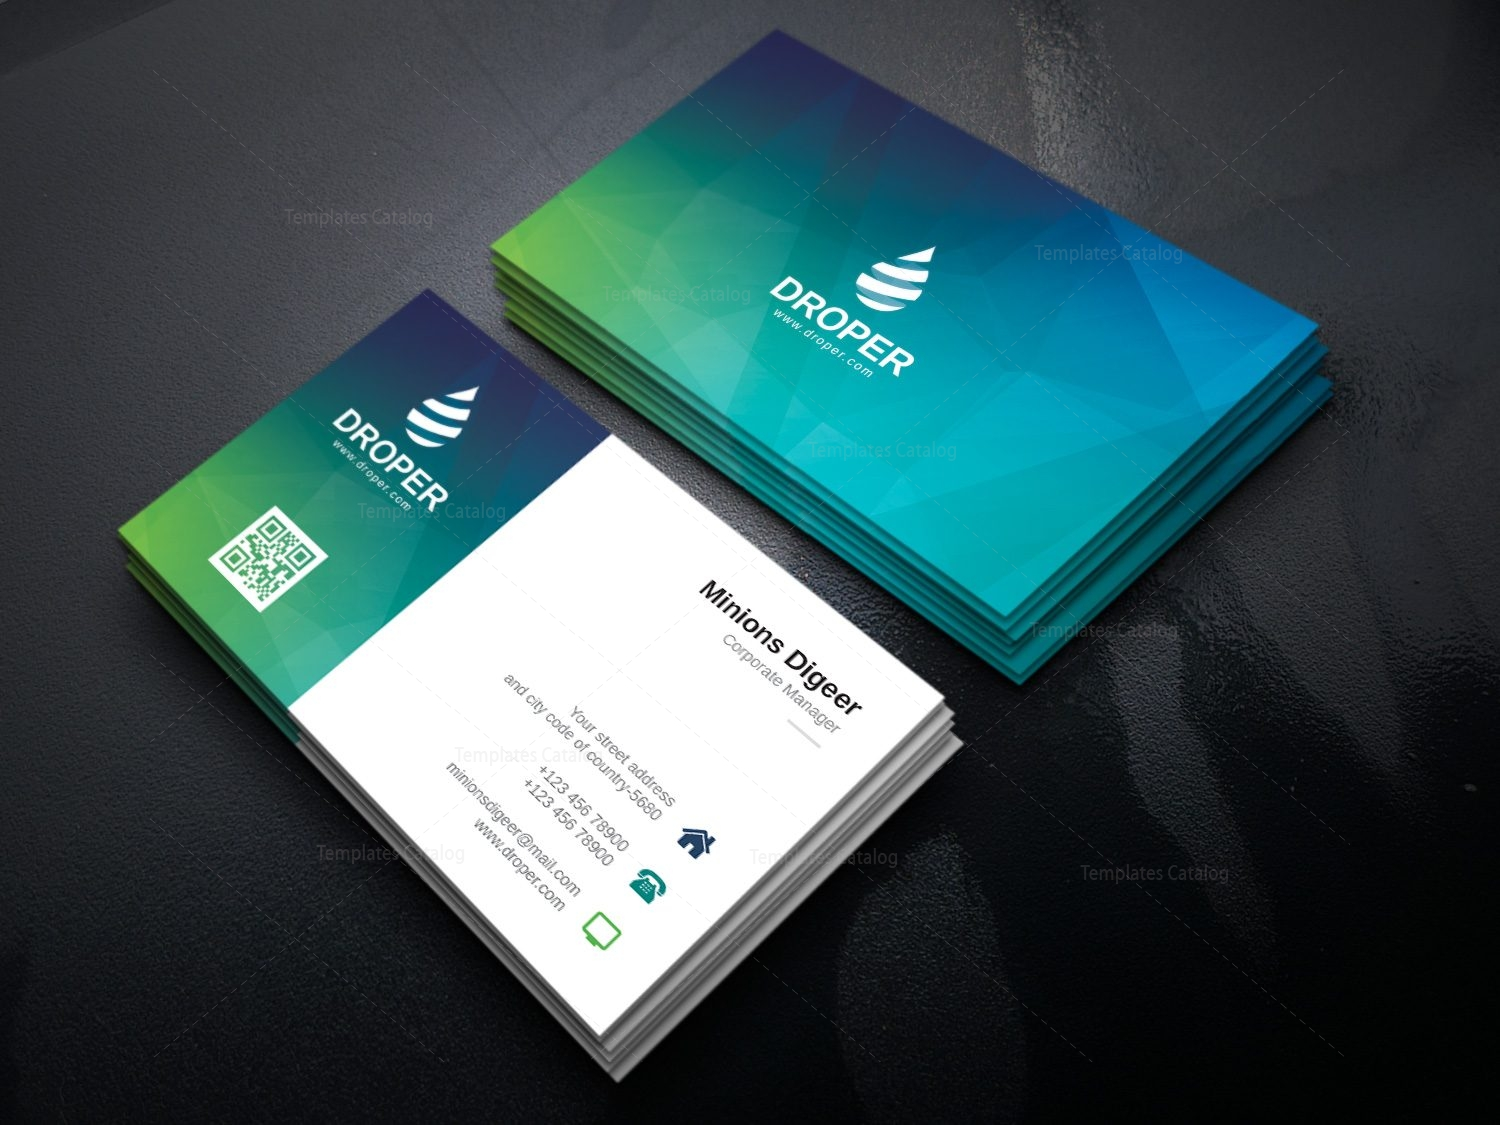 Dolphin modern corporate business card template 000924 template dolphin modern corporate business card template 3 accmission Gallery